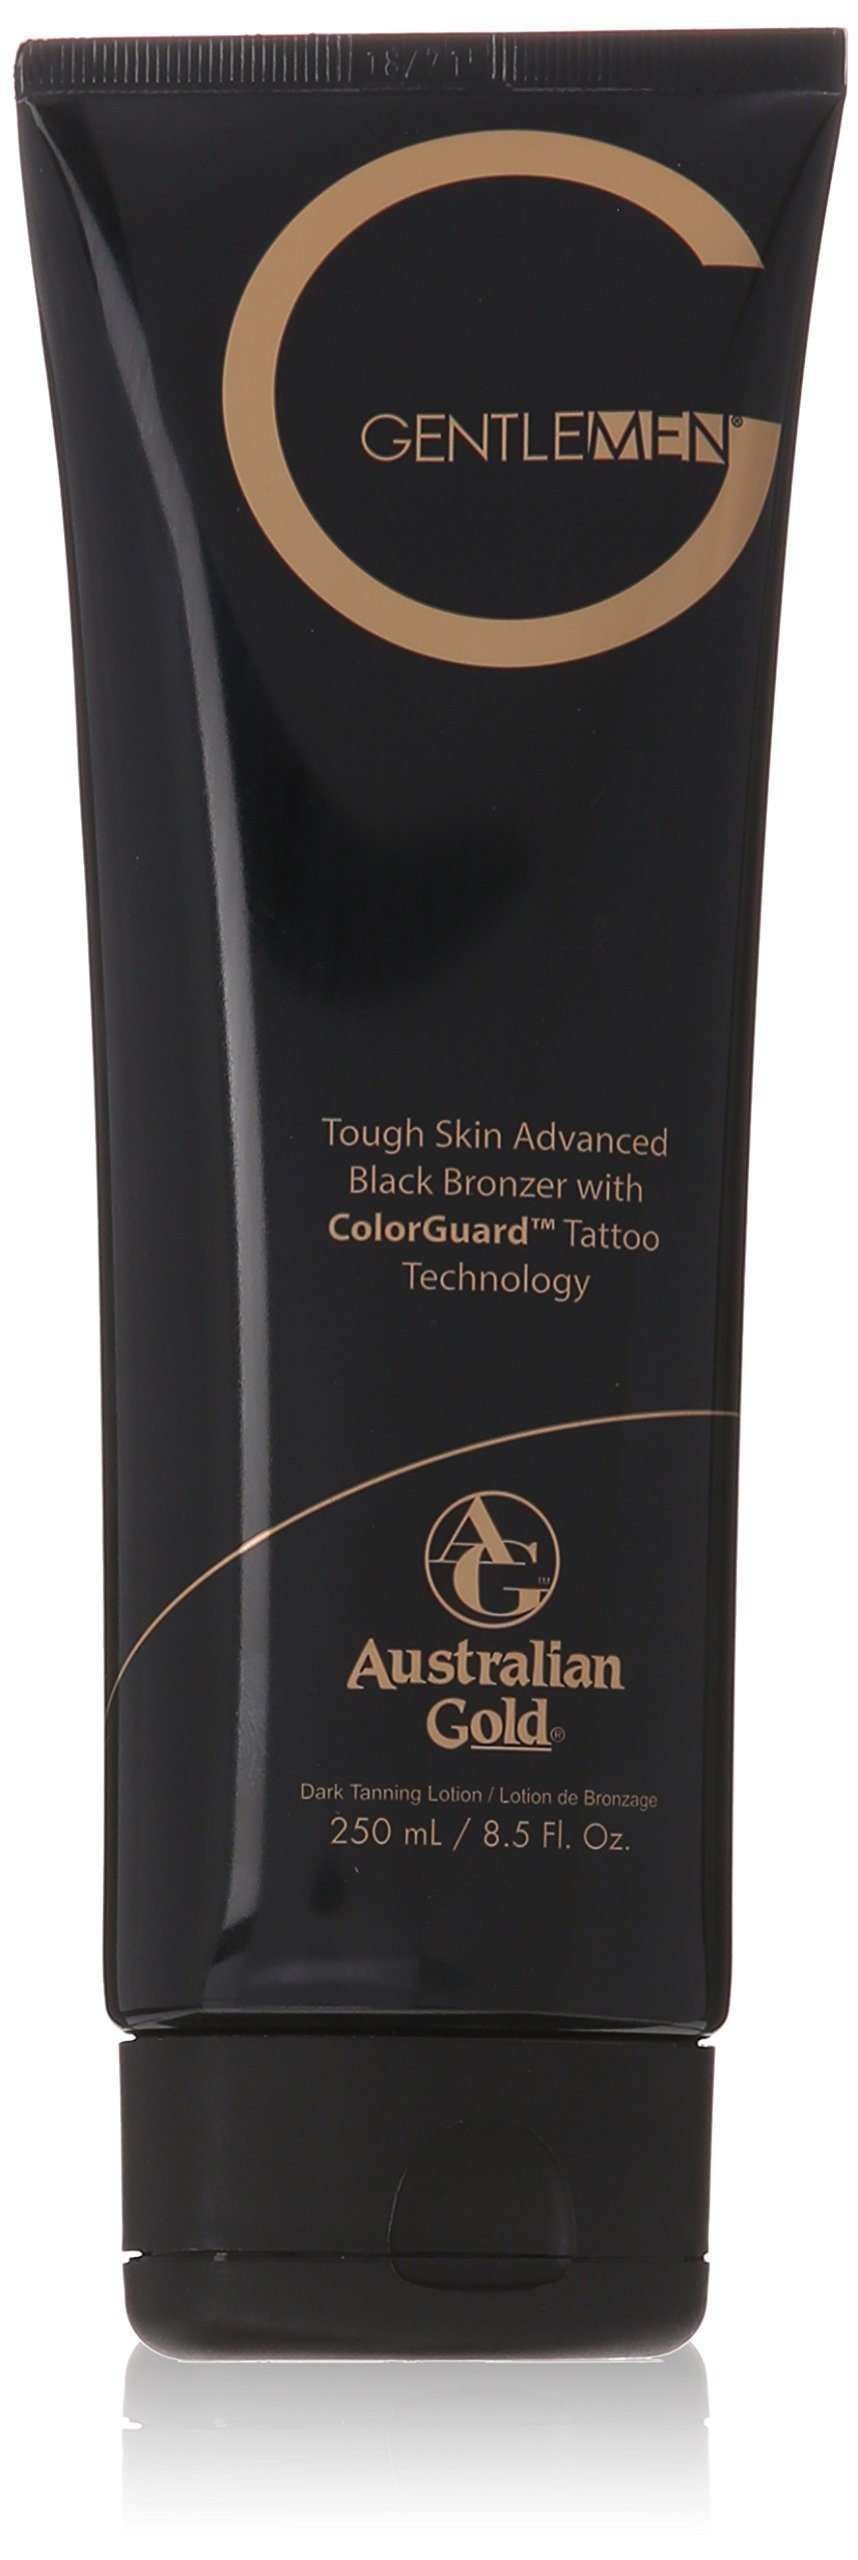 NEW G GENTLEMEN® ADVANCED BLACK BRONZER lotion- 8.5 oz.